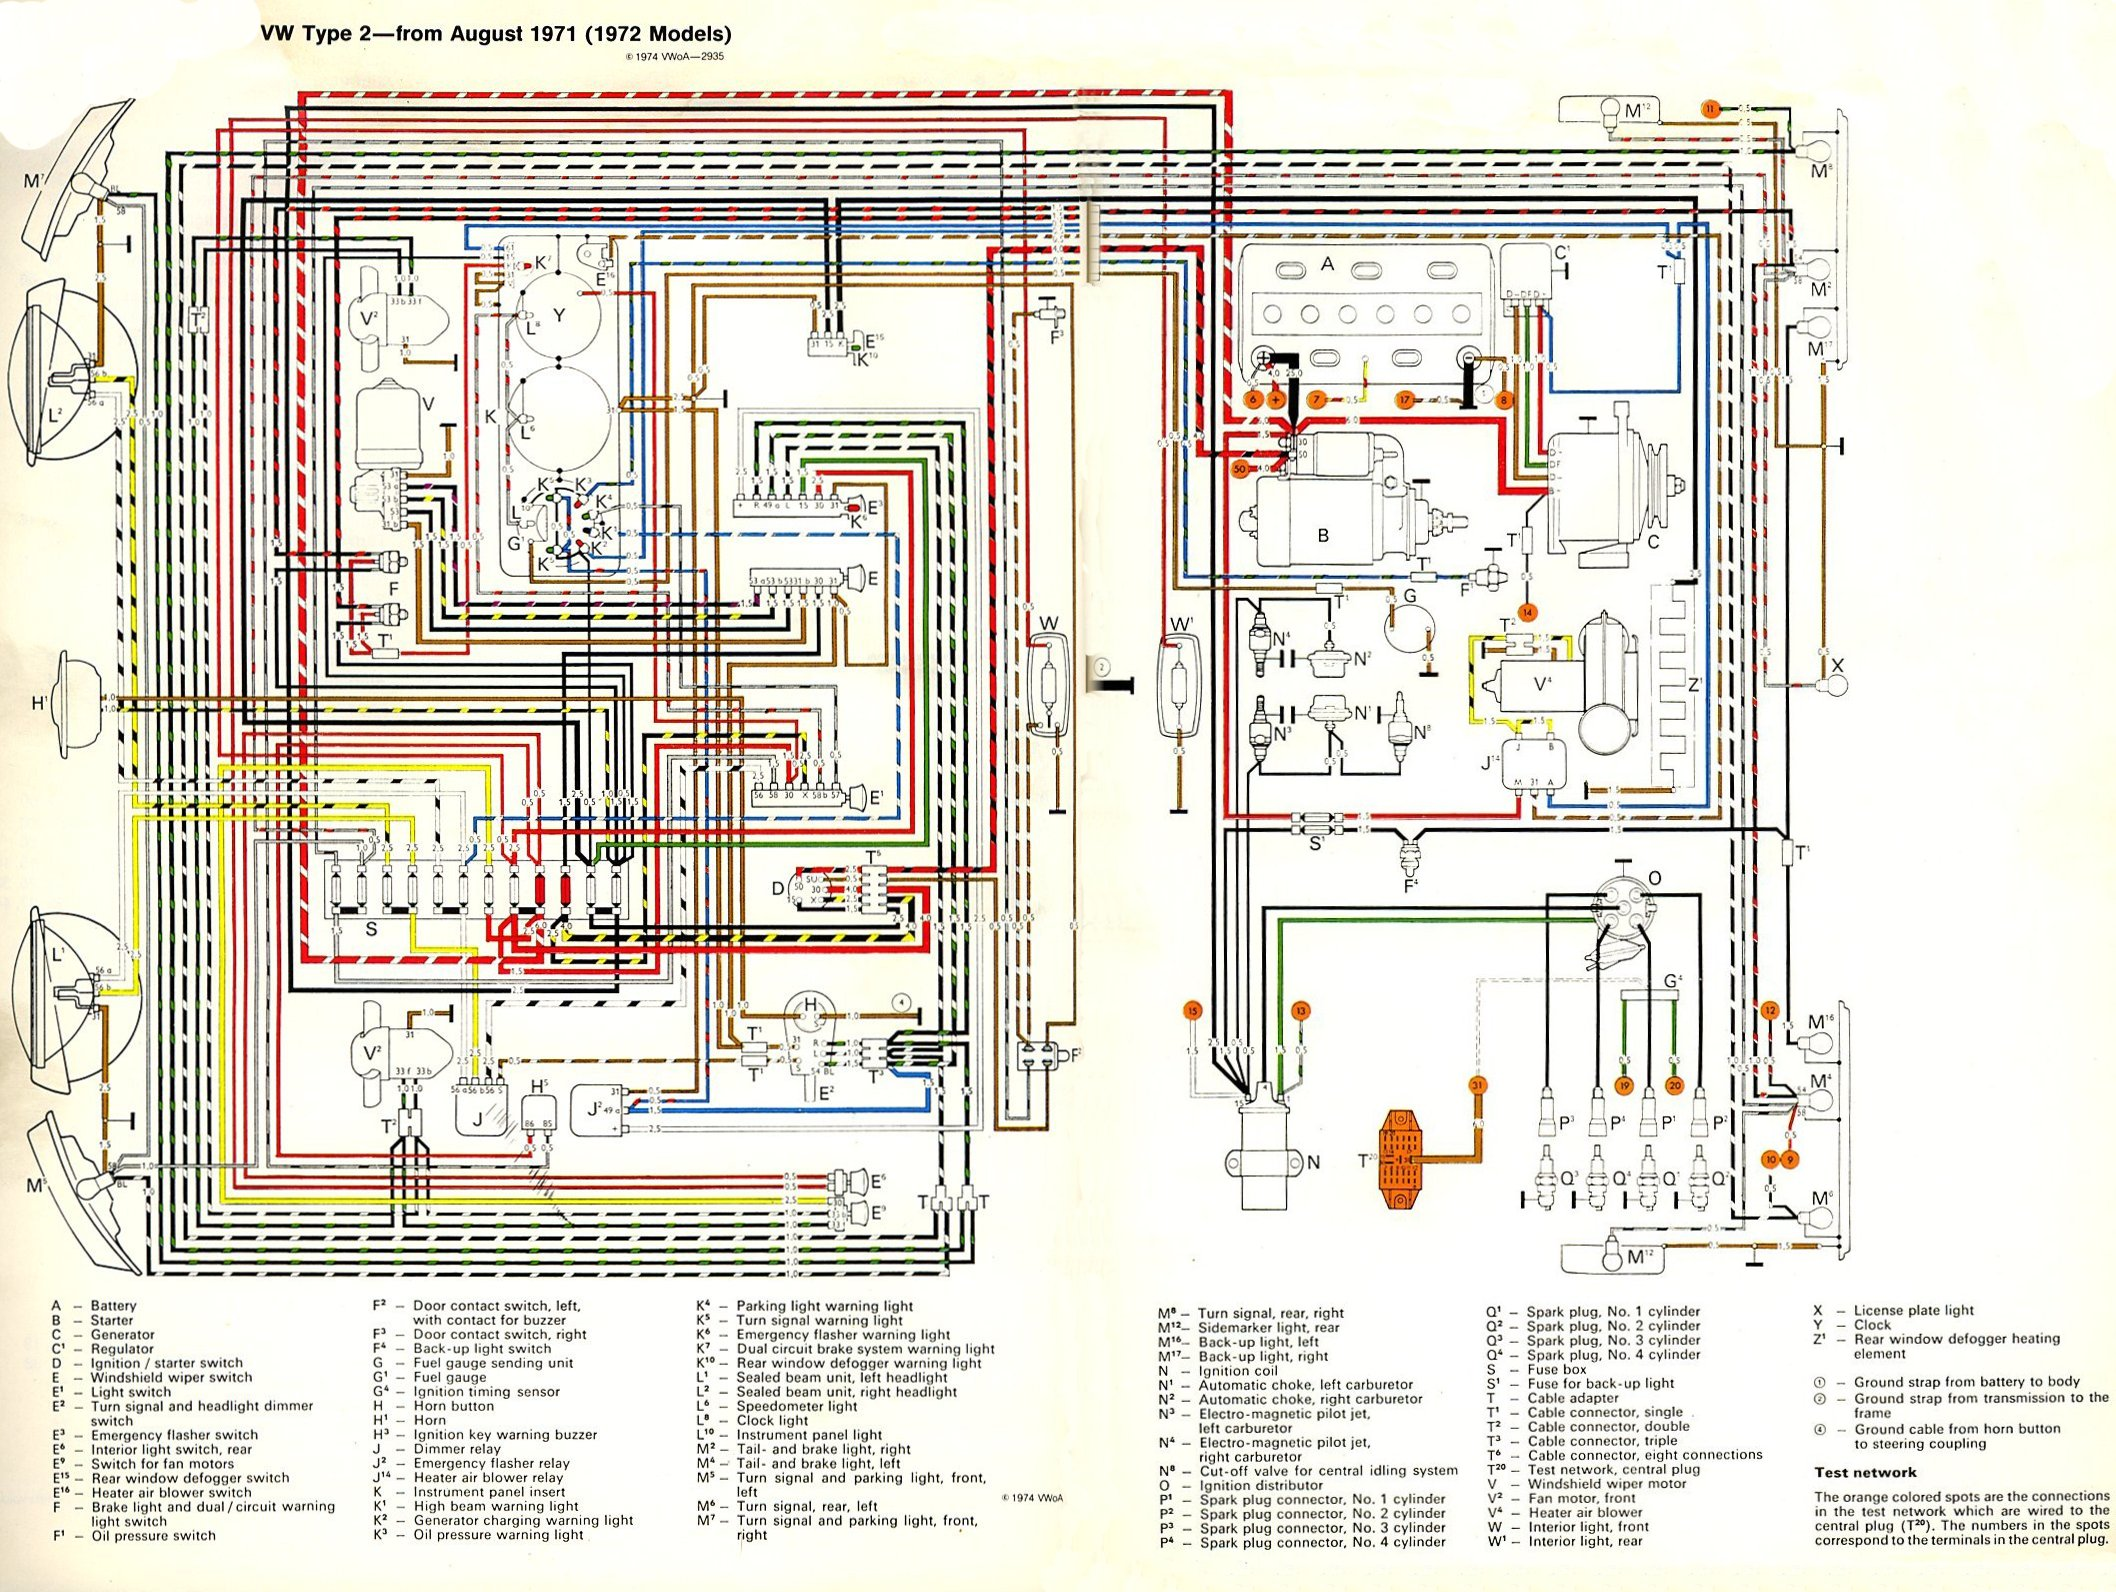 bus_1972_wiring bus_1972_wiring jpg (2116�1592) wire pinterest kombi camper vw t4 fuse box wiring diagram at soozxer.org